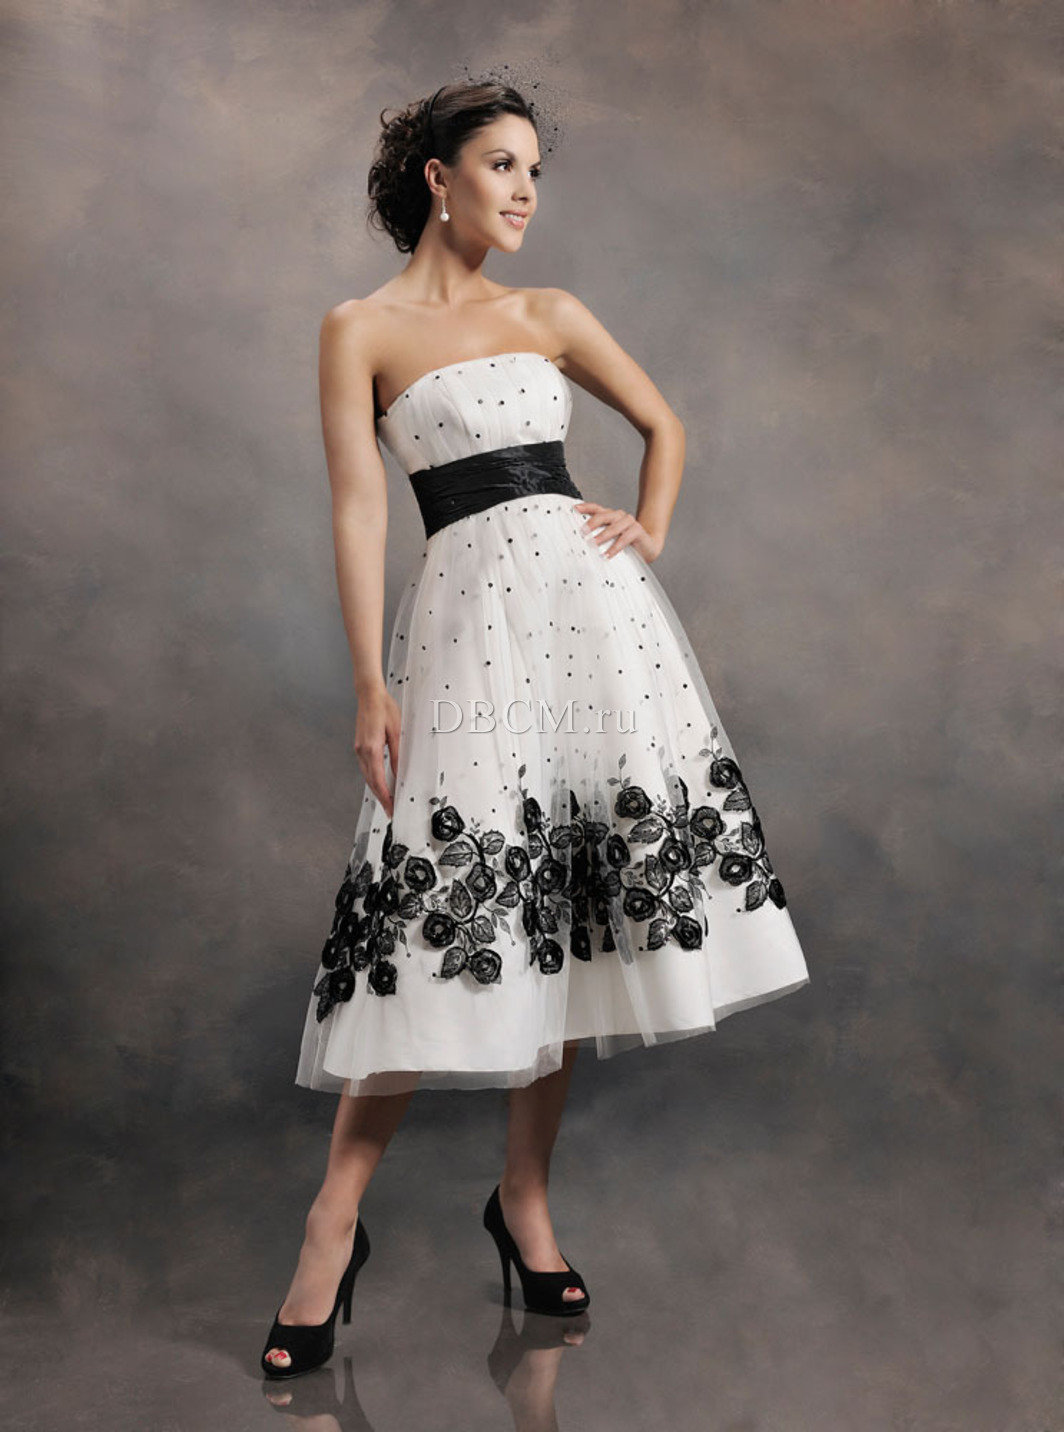 30 ideas of beautiful black and white wedding dresses for Black tea length wedding dress